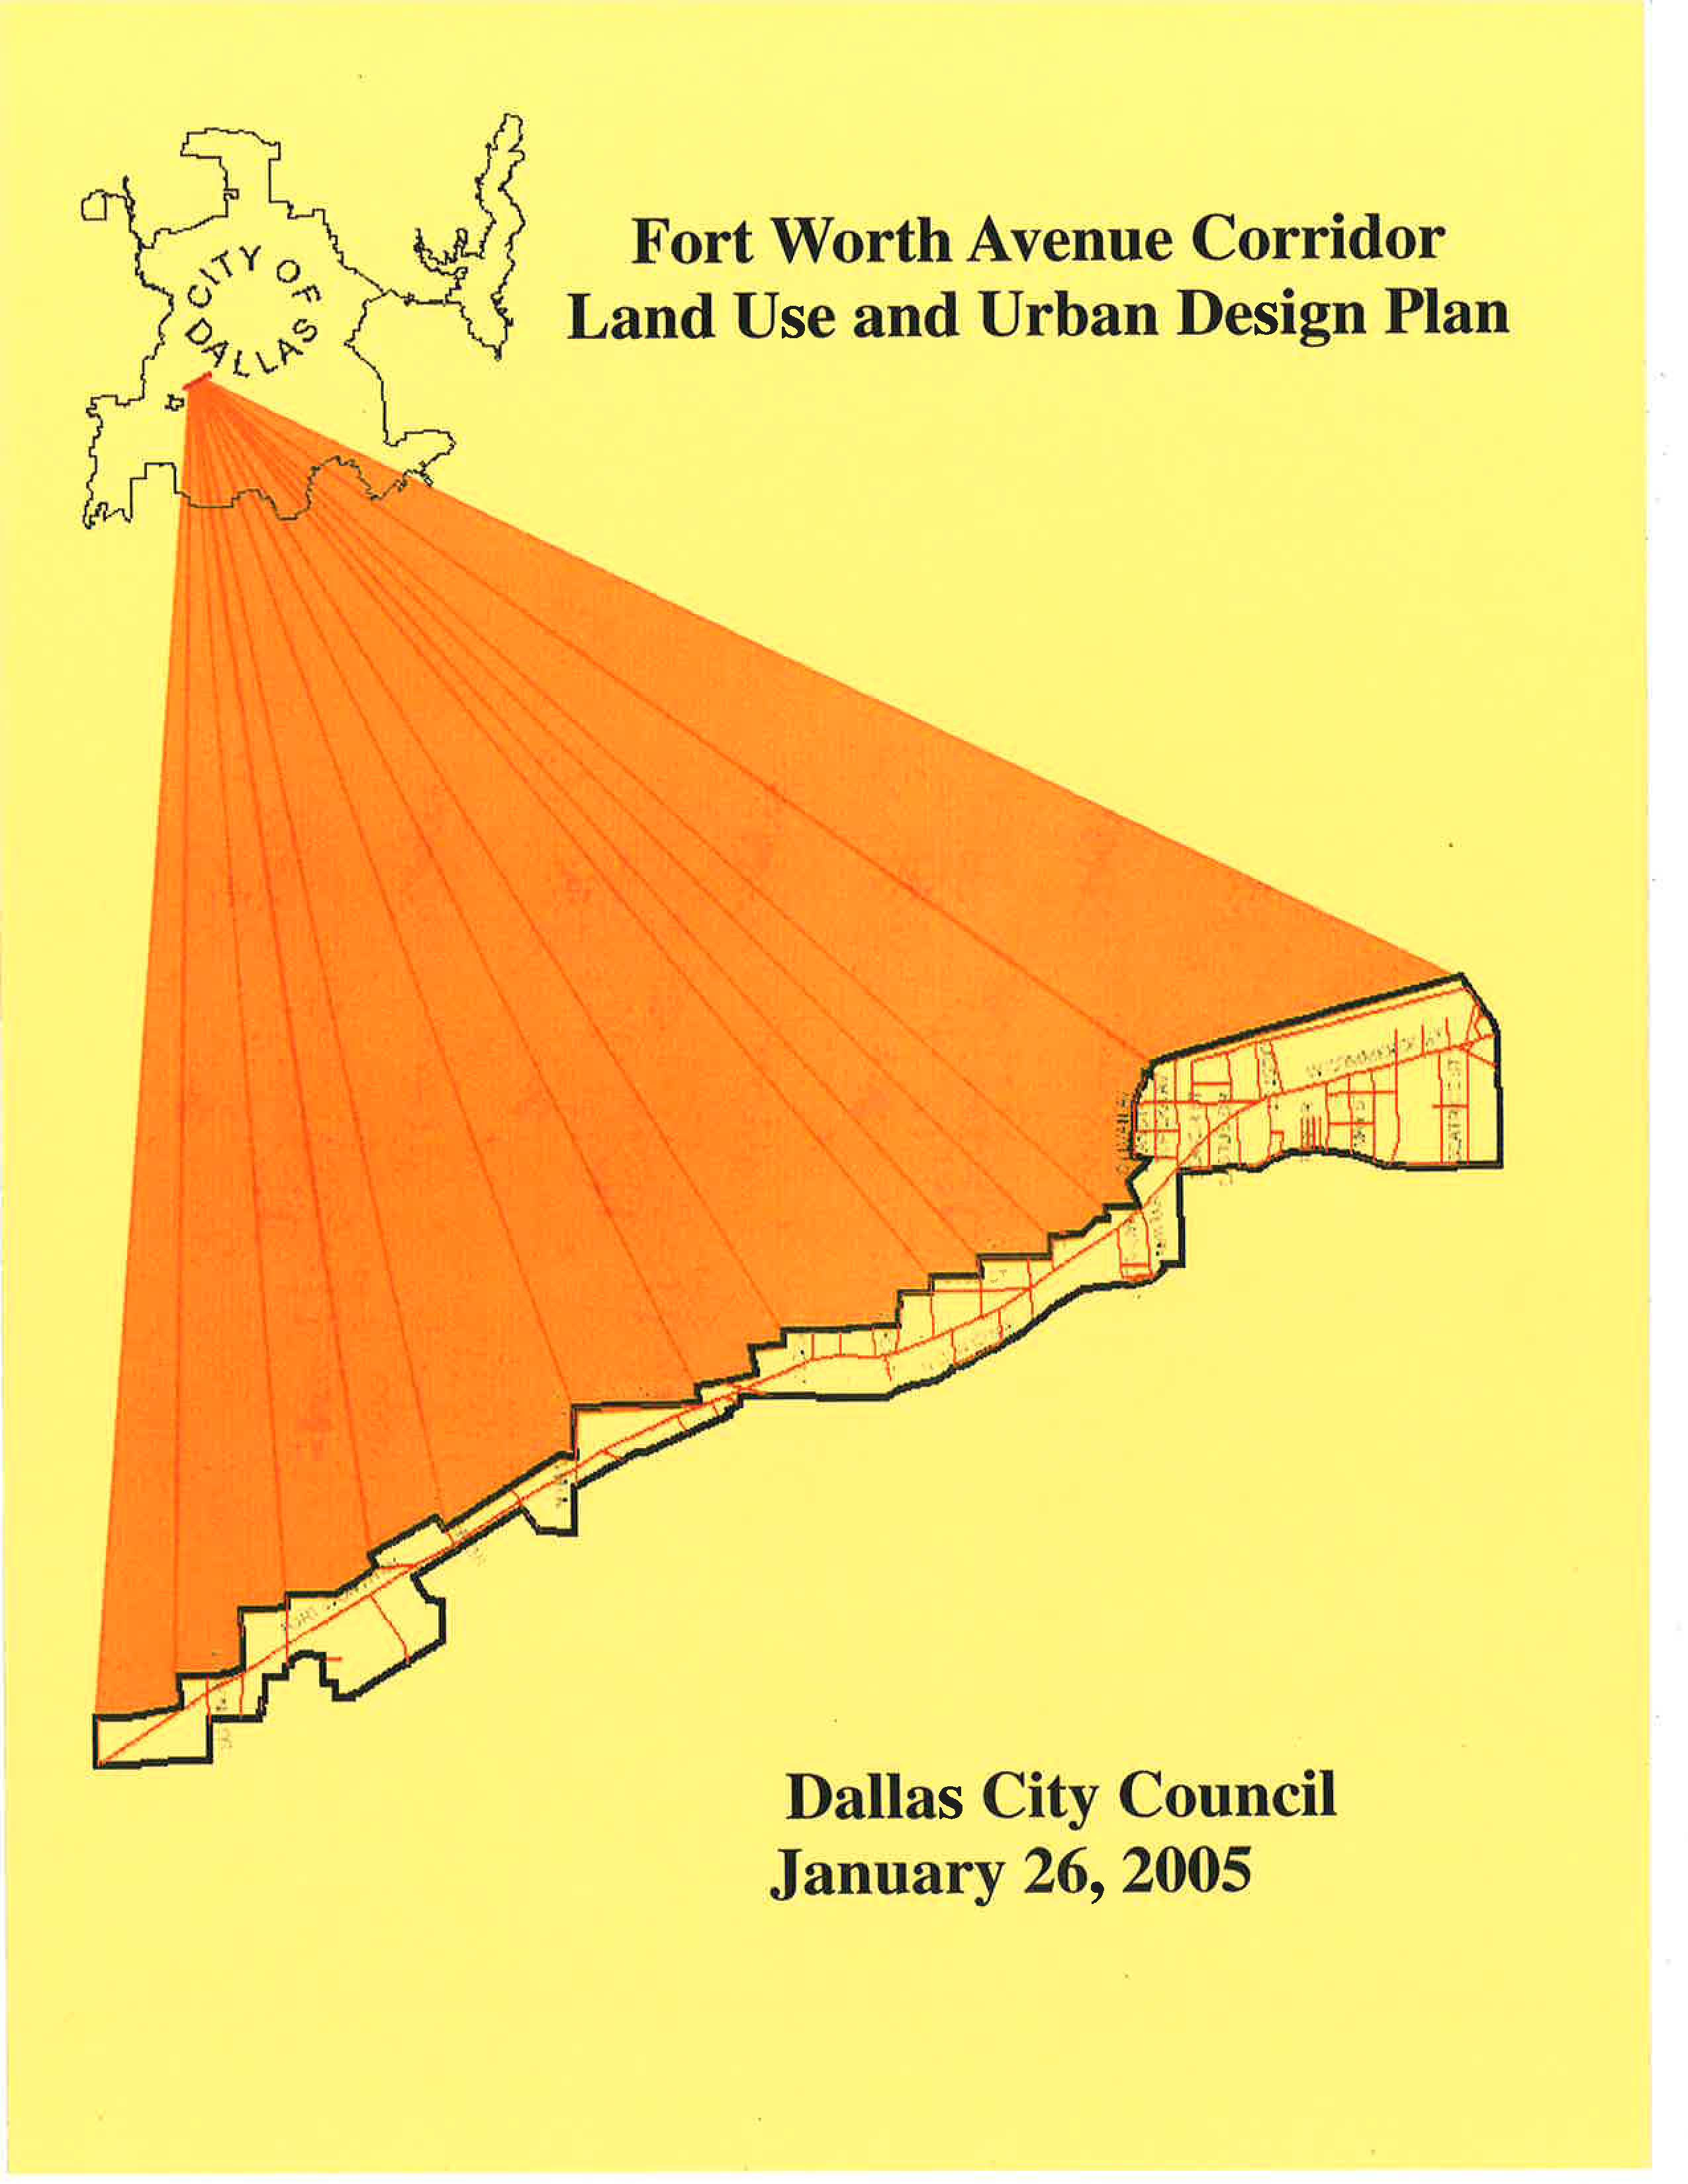 Fortworth Ave Corridor Landuse and Urban Design_Page_001.jpg